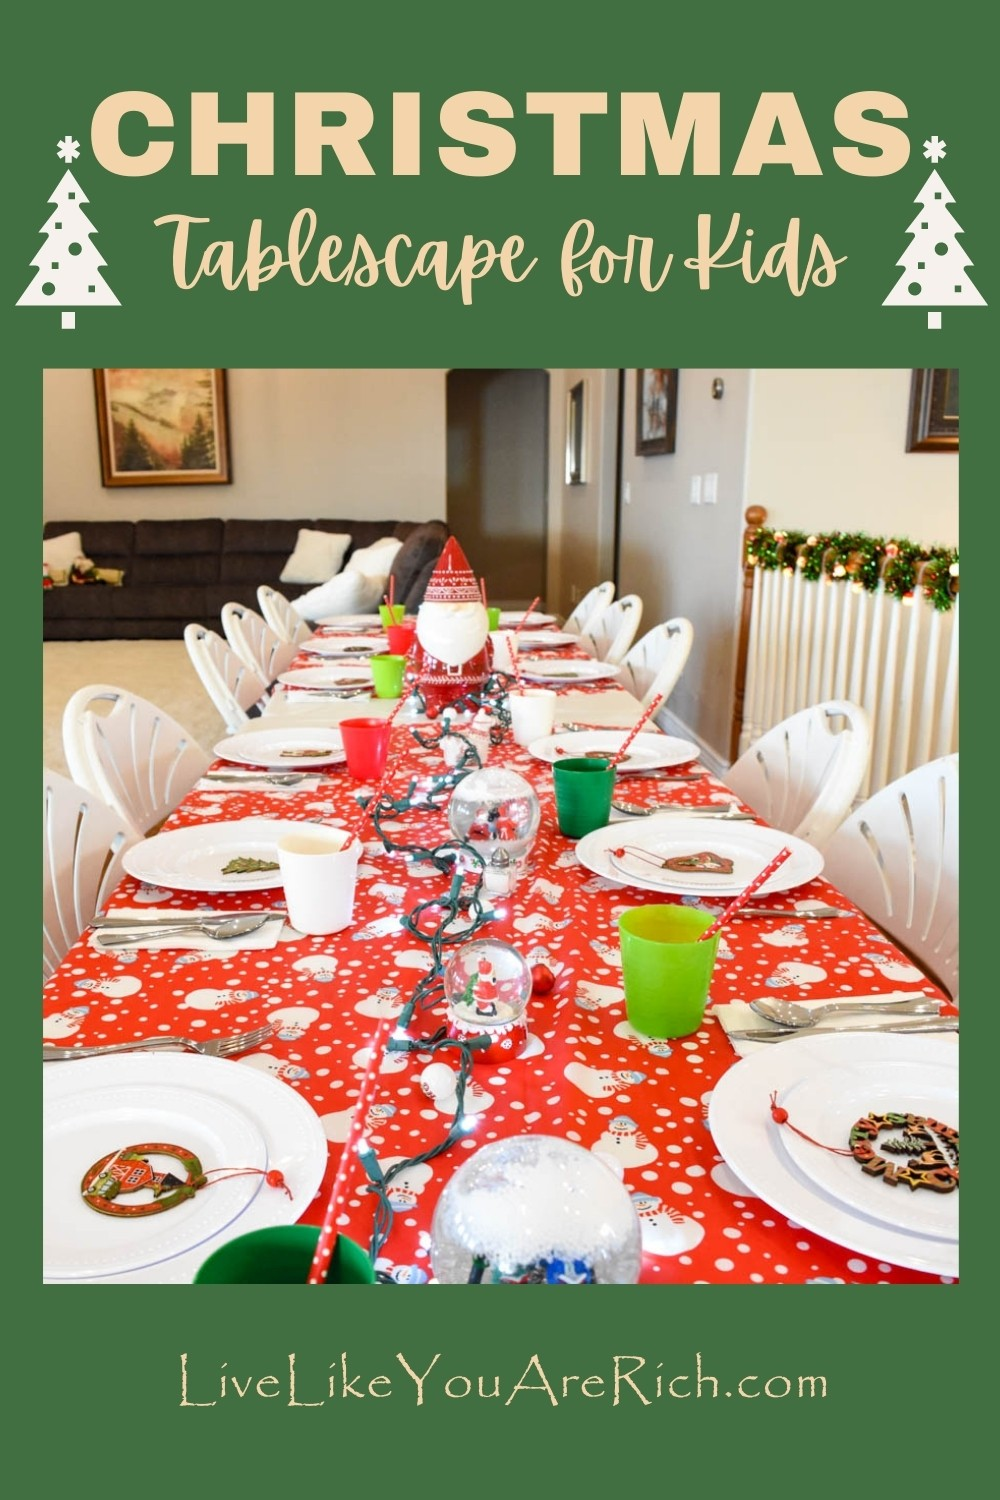 This is a fun Christmas tablescape for kids. My kids love Christmas! They love the lights, sledding and building of snowmen, thoughts of Santa, Christmas movies, cookie making, present opening and giving, gingerbread house building, etc. It has been so fun to see the magic in my children's lives doing these fun activities each Christmas.